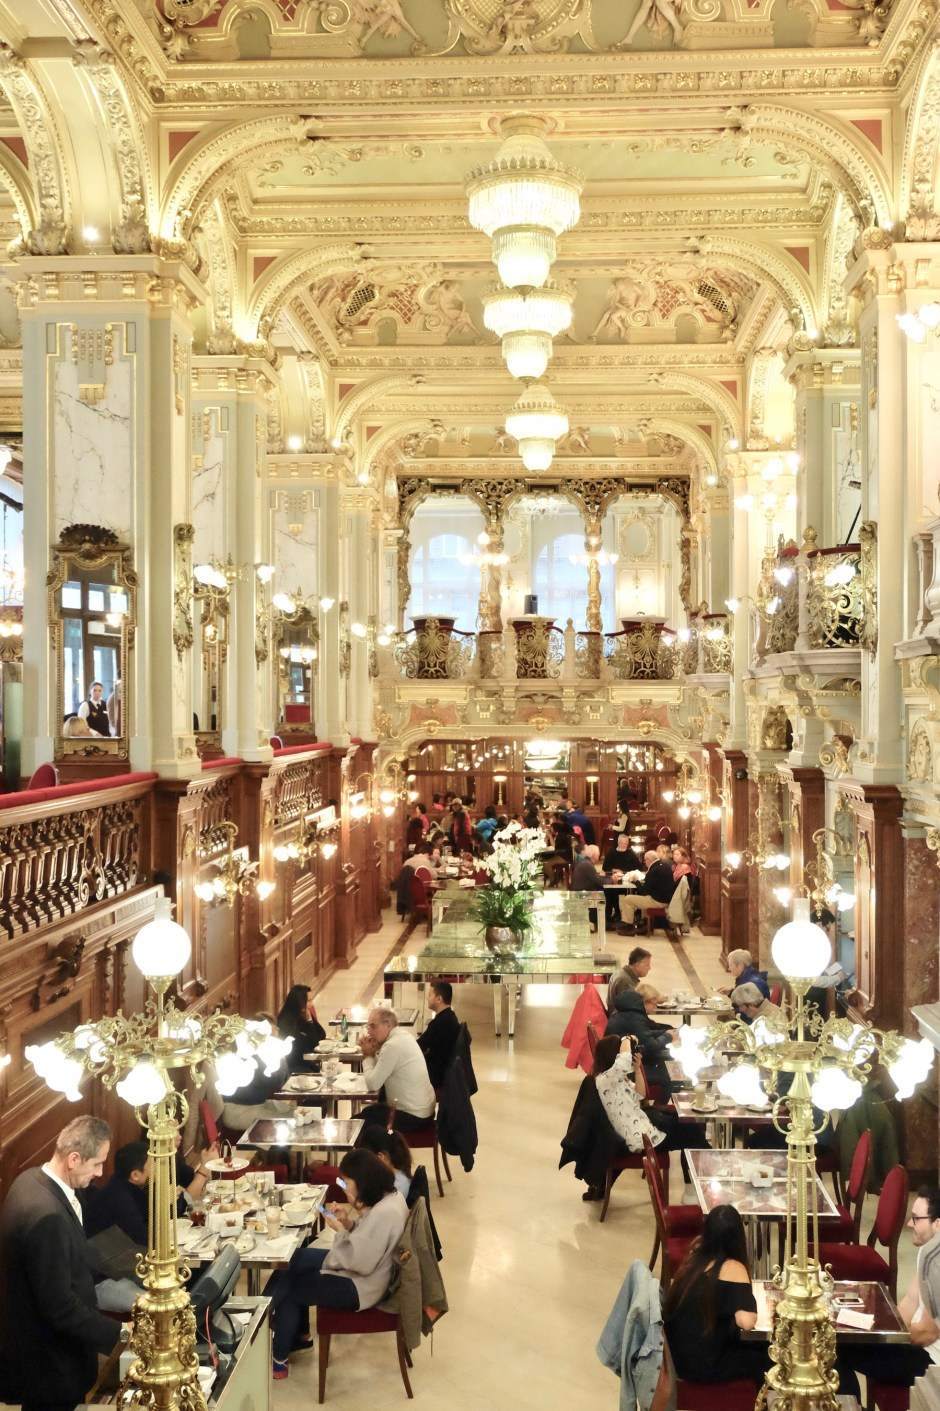 New York Cafe Budapest Interior